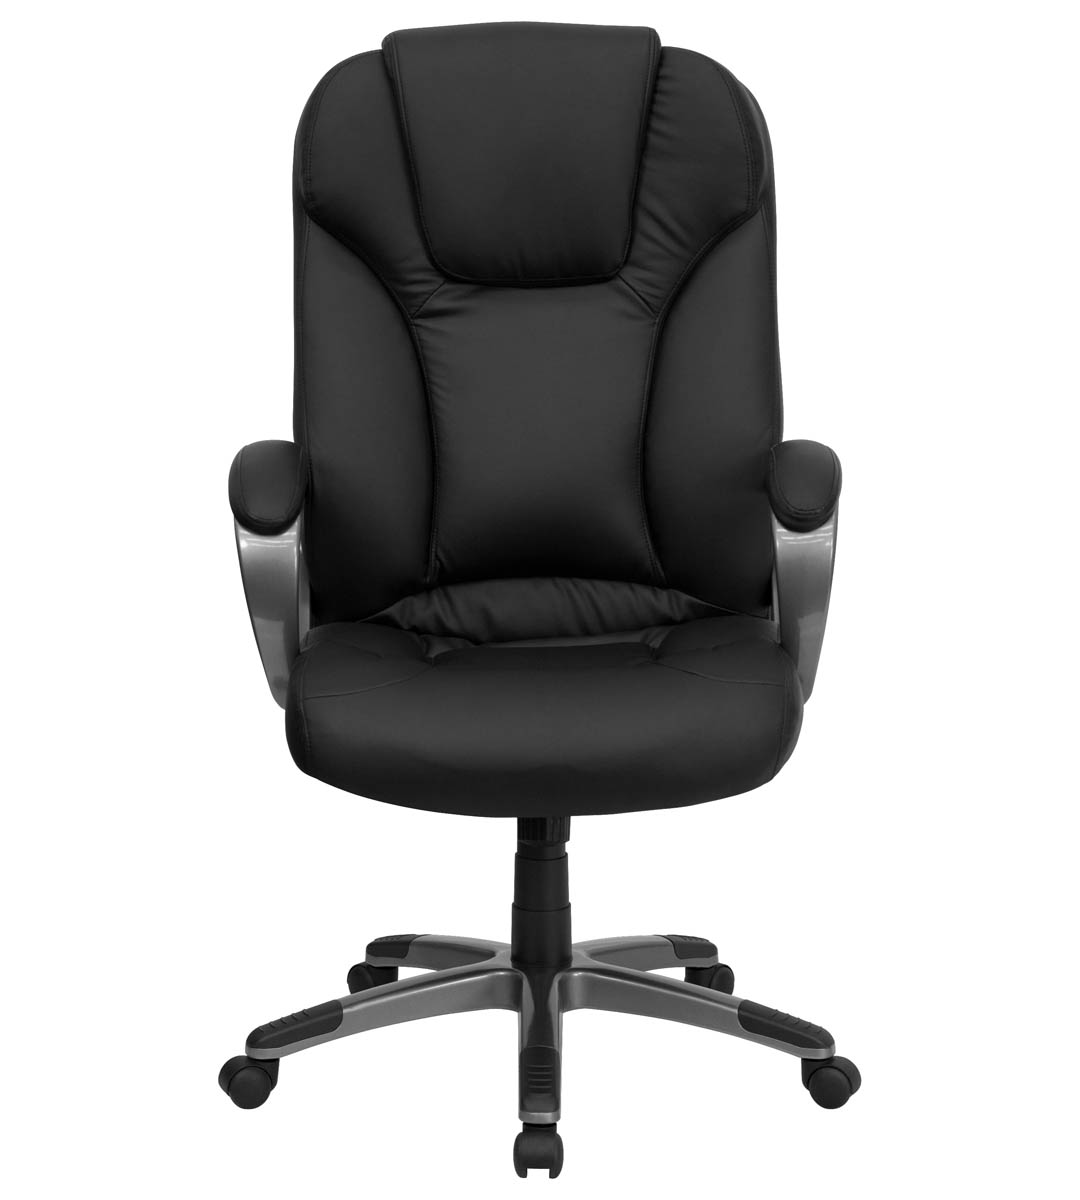 plush leather chair mom to be for baby shower formfit executive black office